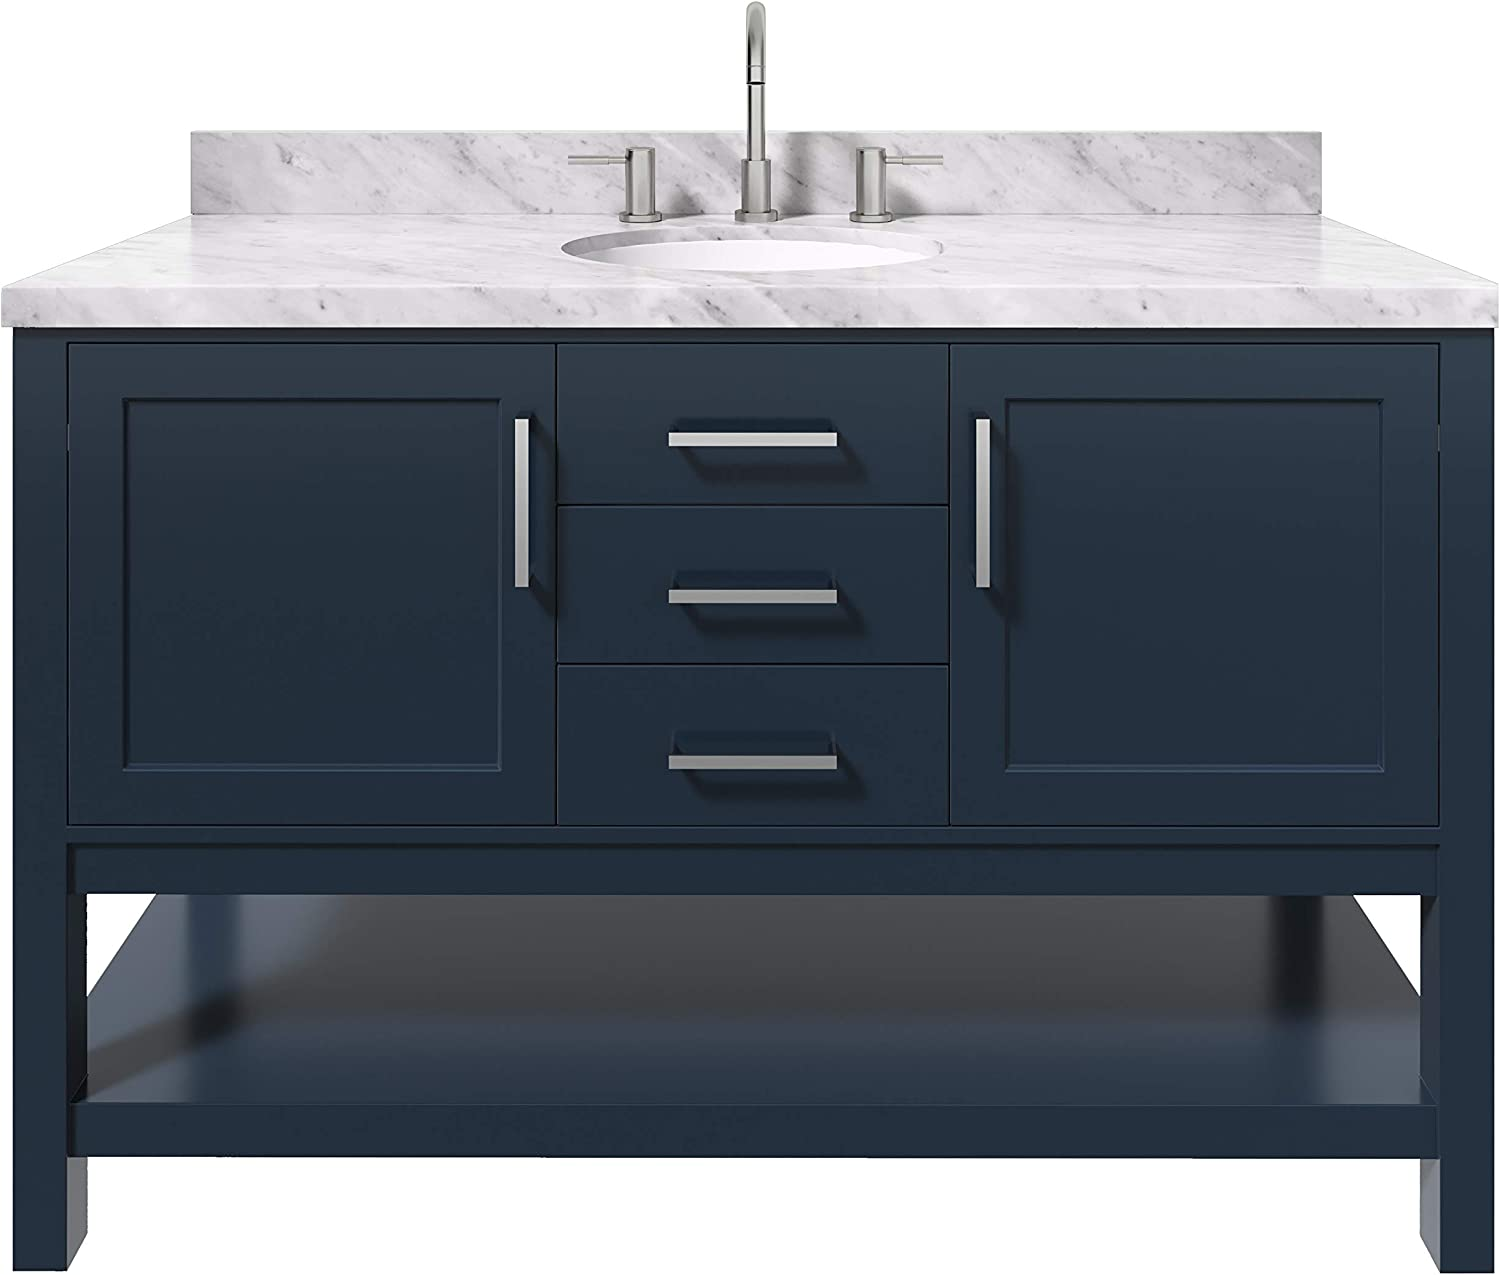 Amazon Com Ariel Bayhill 55 Inch Bathroom Vanity In Midnight Blue W 1 5 Edge Carrara Marble Countertop Oval 2 Soft Closing Doors And 2 Dovetail Full Extensions Drawers Open Storage